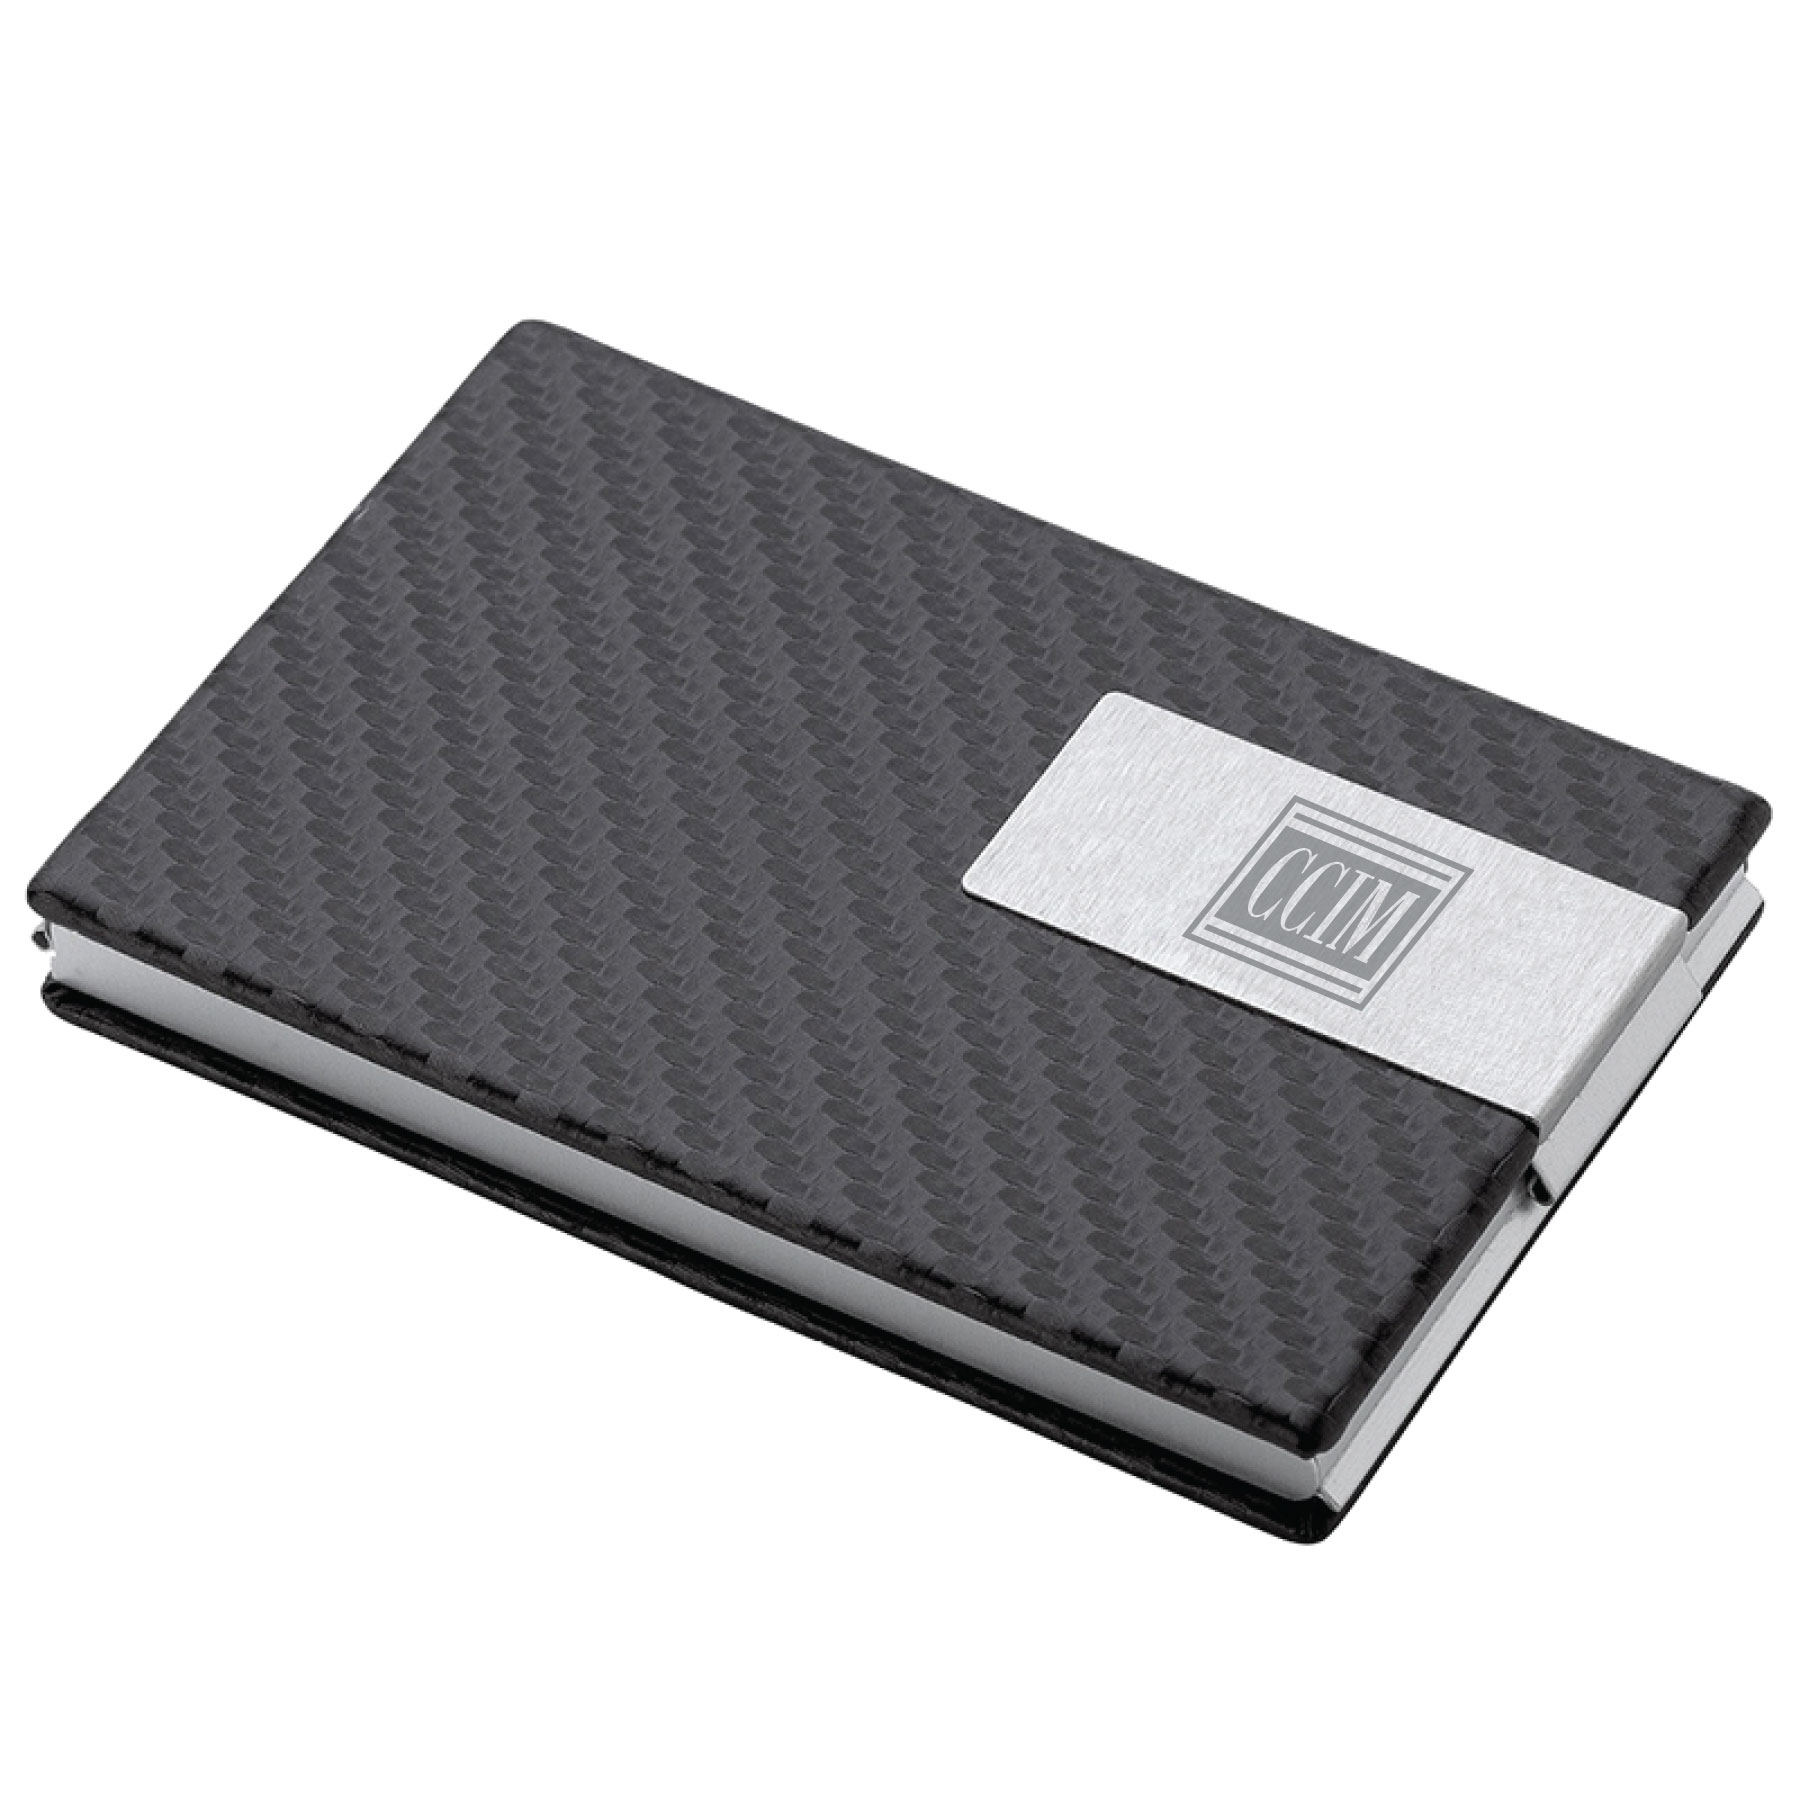 CCIM Carbon Mesh Business Card Case Cards,Busineses,BusinessCards,Holders,Purse,